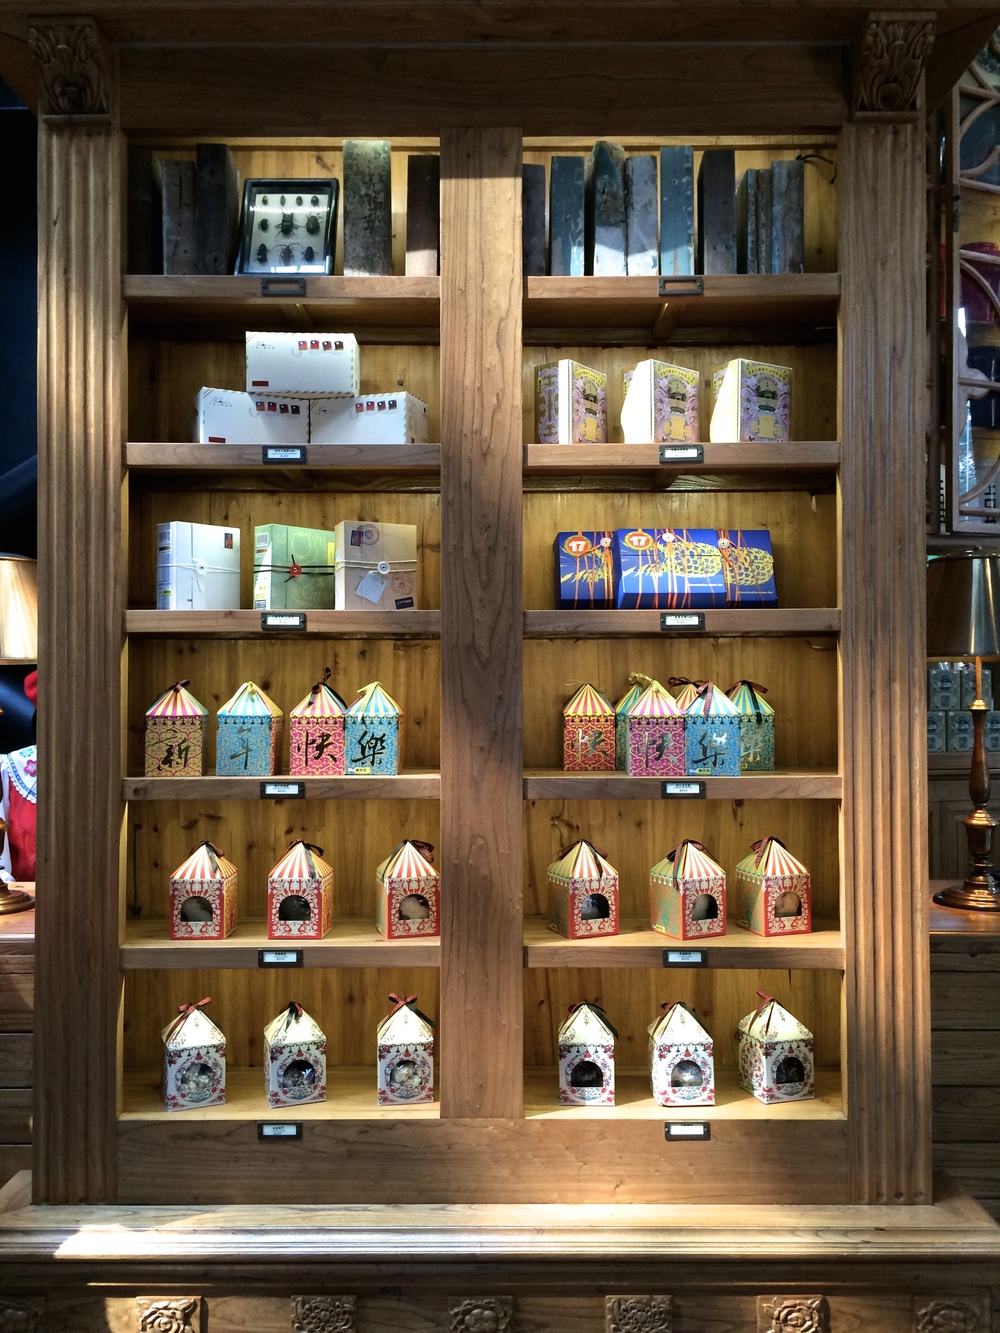 one of the many tea displays. the boxes are really creative and would make gorgeous gifts.